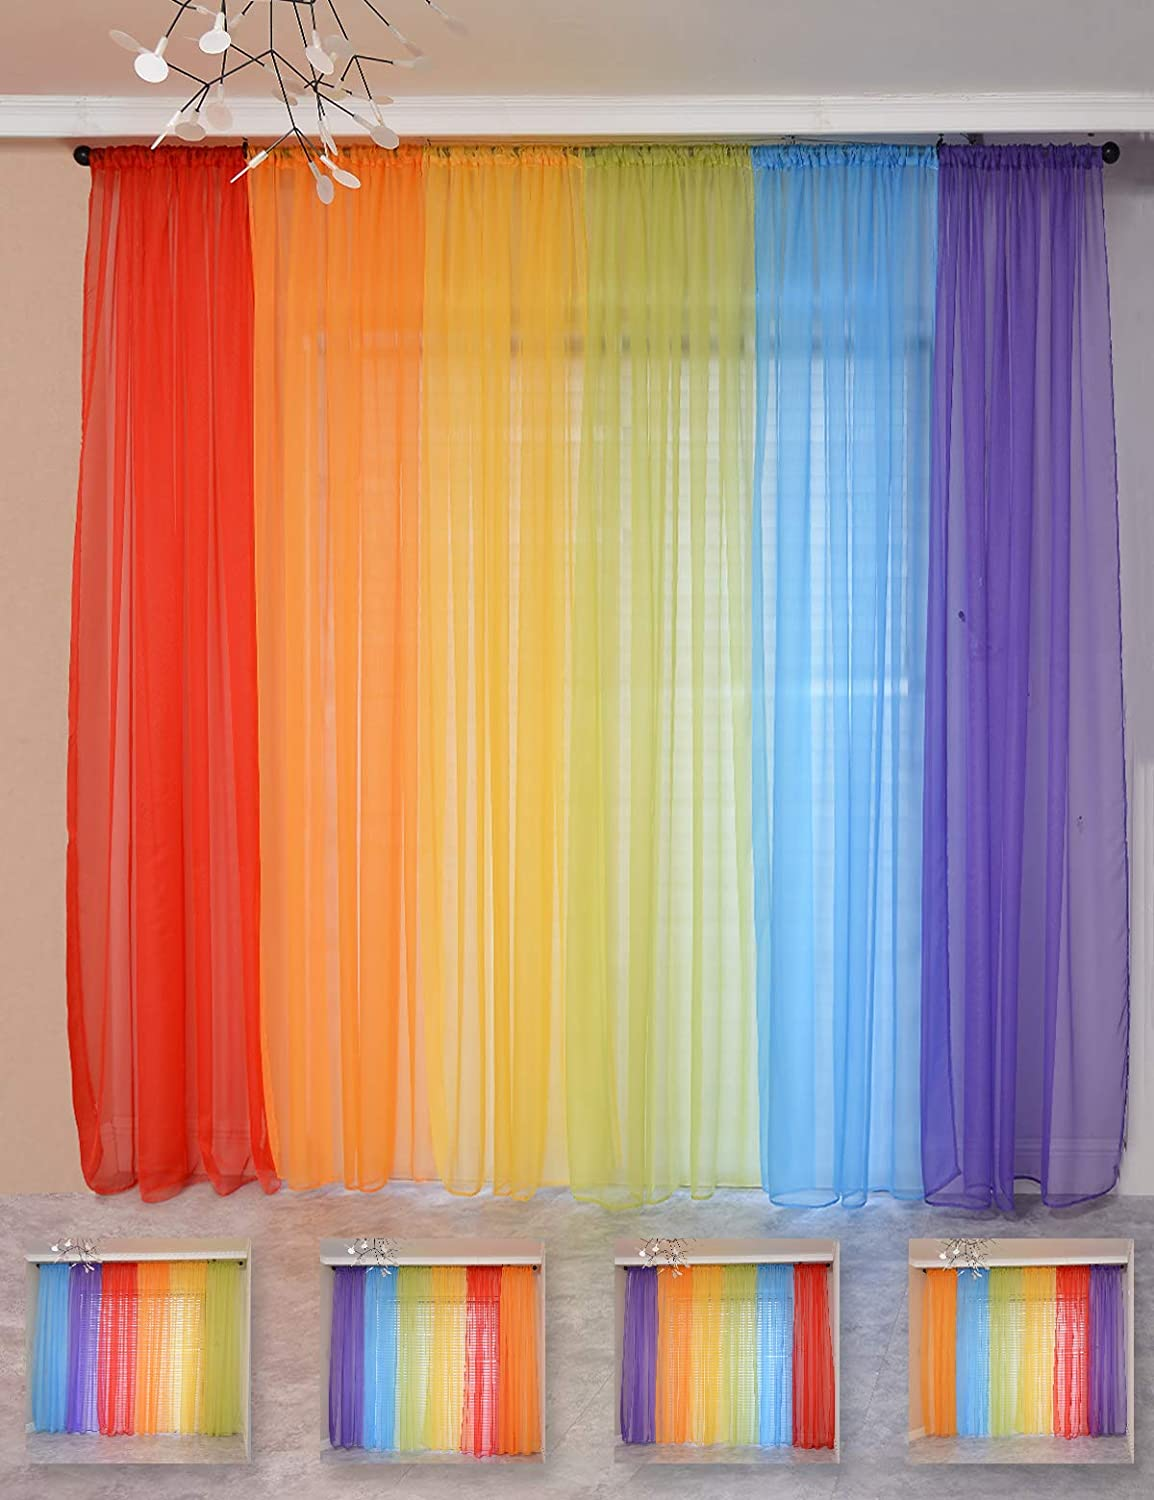 """Yancorp 6 Panels Sheer Curtains Rainbow 240"""" Wide Window Decoration Voile Drapes 84 Inches Kids Girls Party Favor Christmas Classroom Decor Kitchen Bedroom Backdrop Red Orange Yellow Green Blue Purple"""